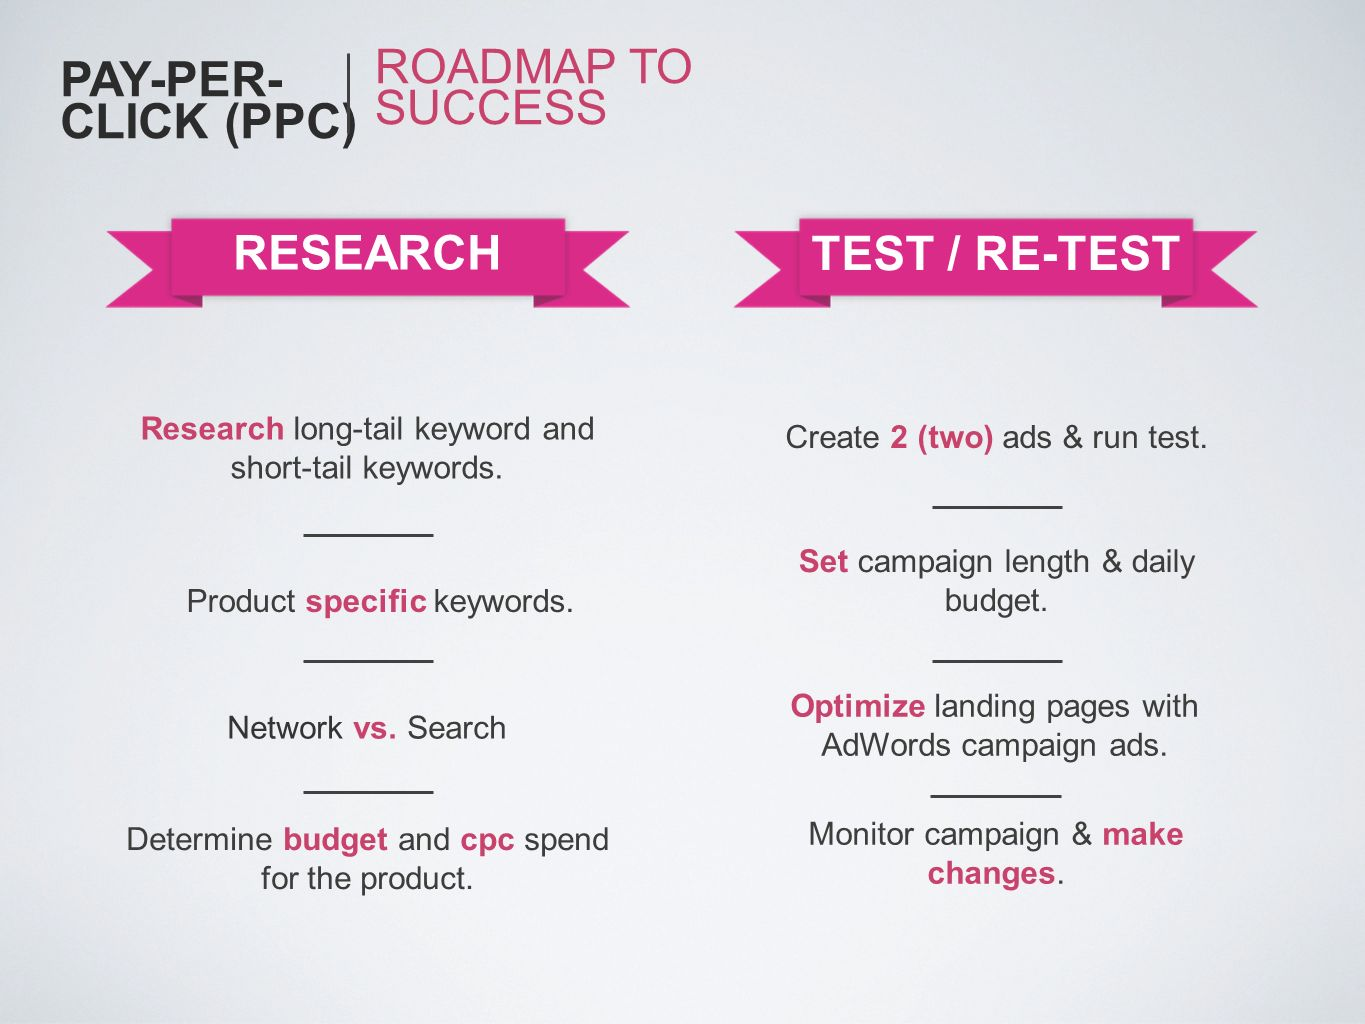 PAY-PER- CLICK (PPC) RESEARCH ROADMAP TO SUCCESS Research long-tail keyword and short-tail keywords. Determine budget and cpc spend for the product. N